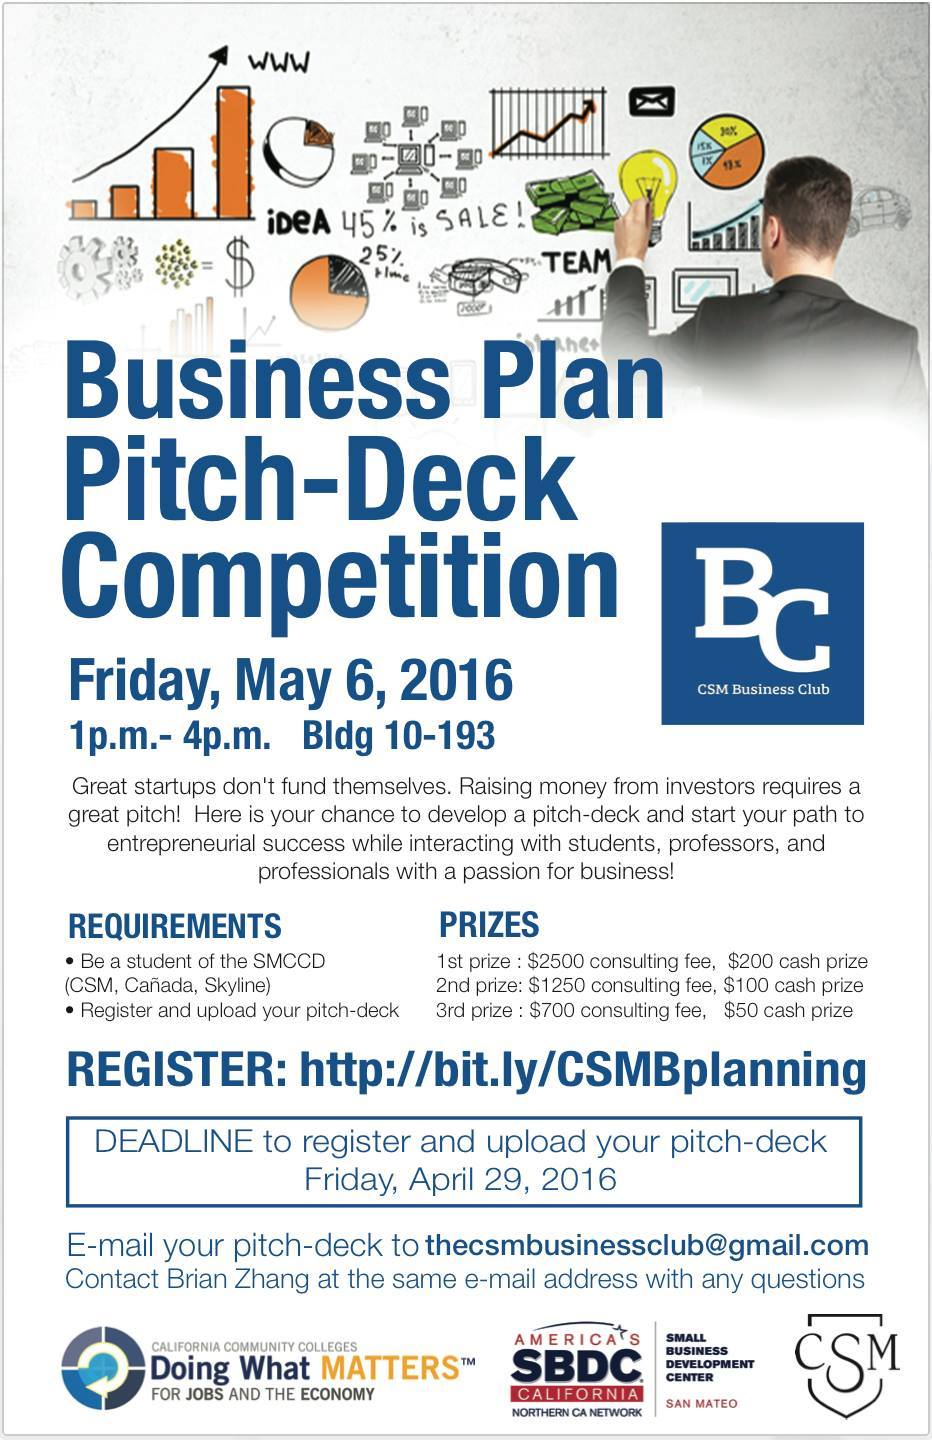 college of san mateo s business plan pitch deck competition